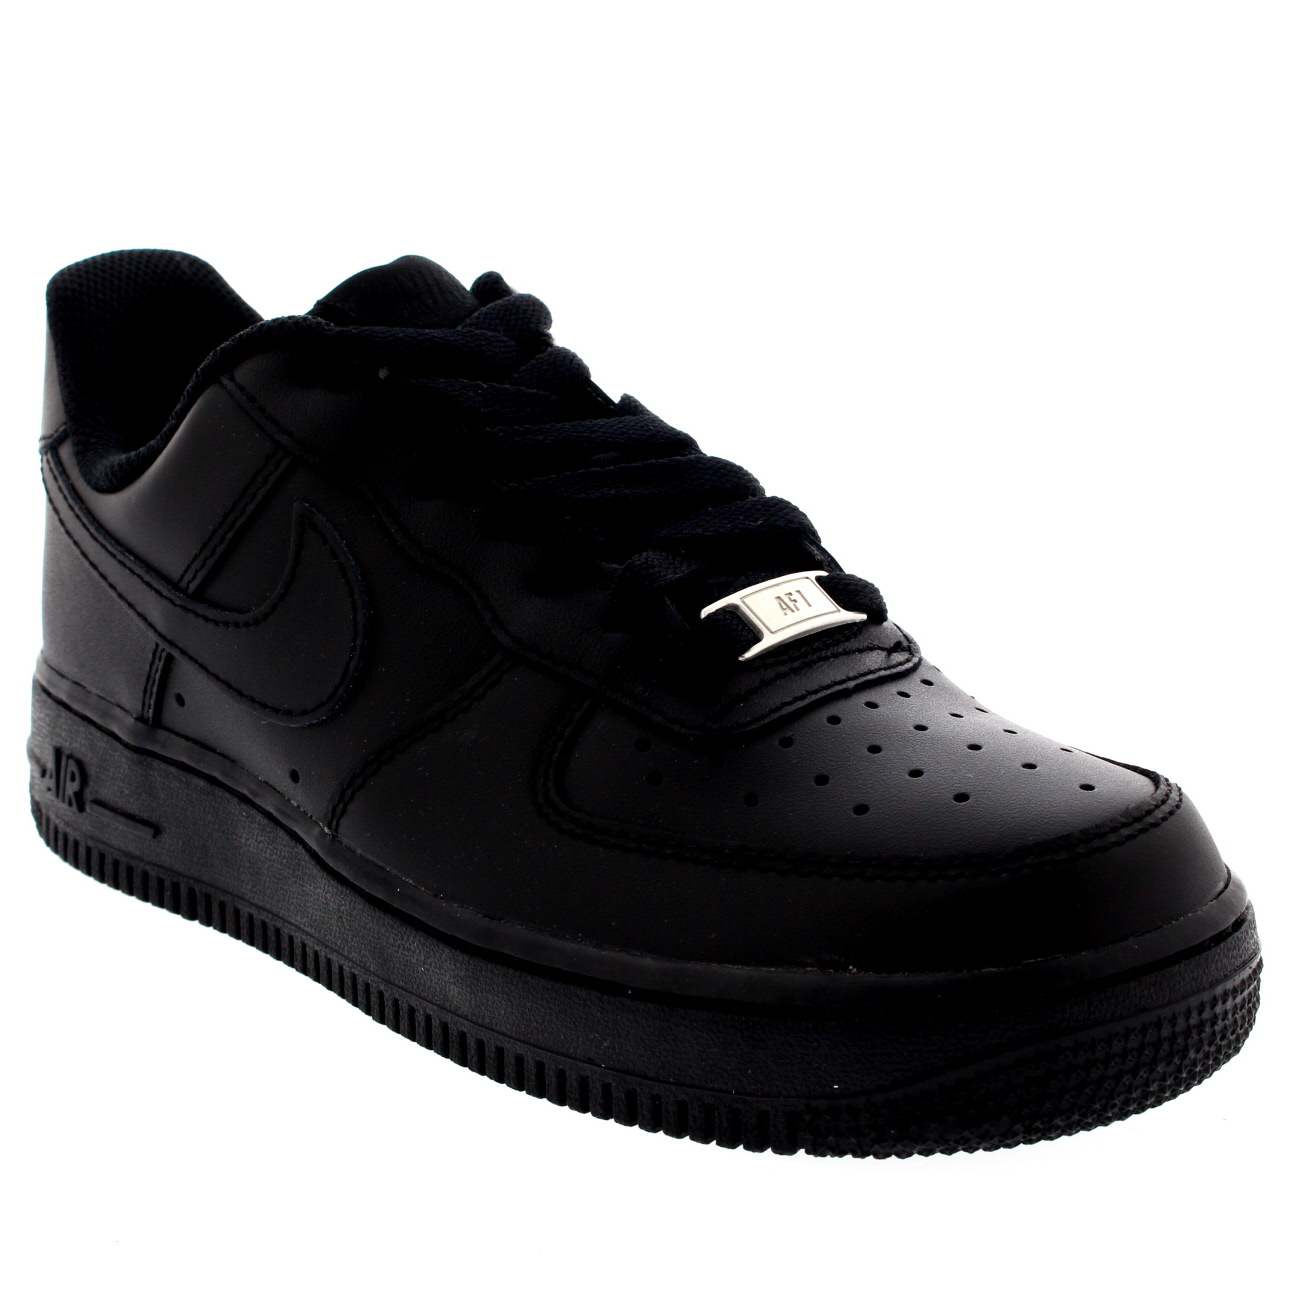 size 40 47721 7d92f Donna Nike Air Force 1 07 Pizzo Sportivos Corsa Basso Top Formatori EU  3642.5 - mainstreetblytheville.org